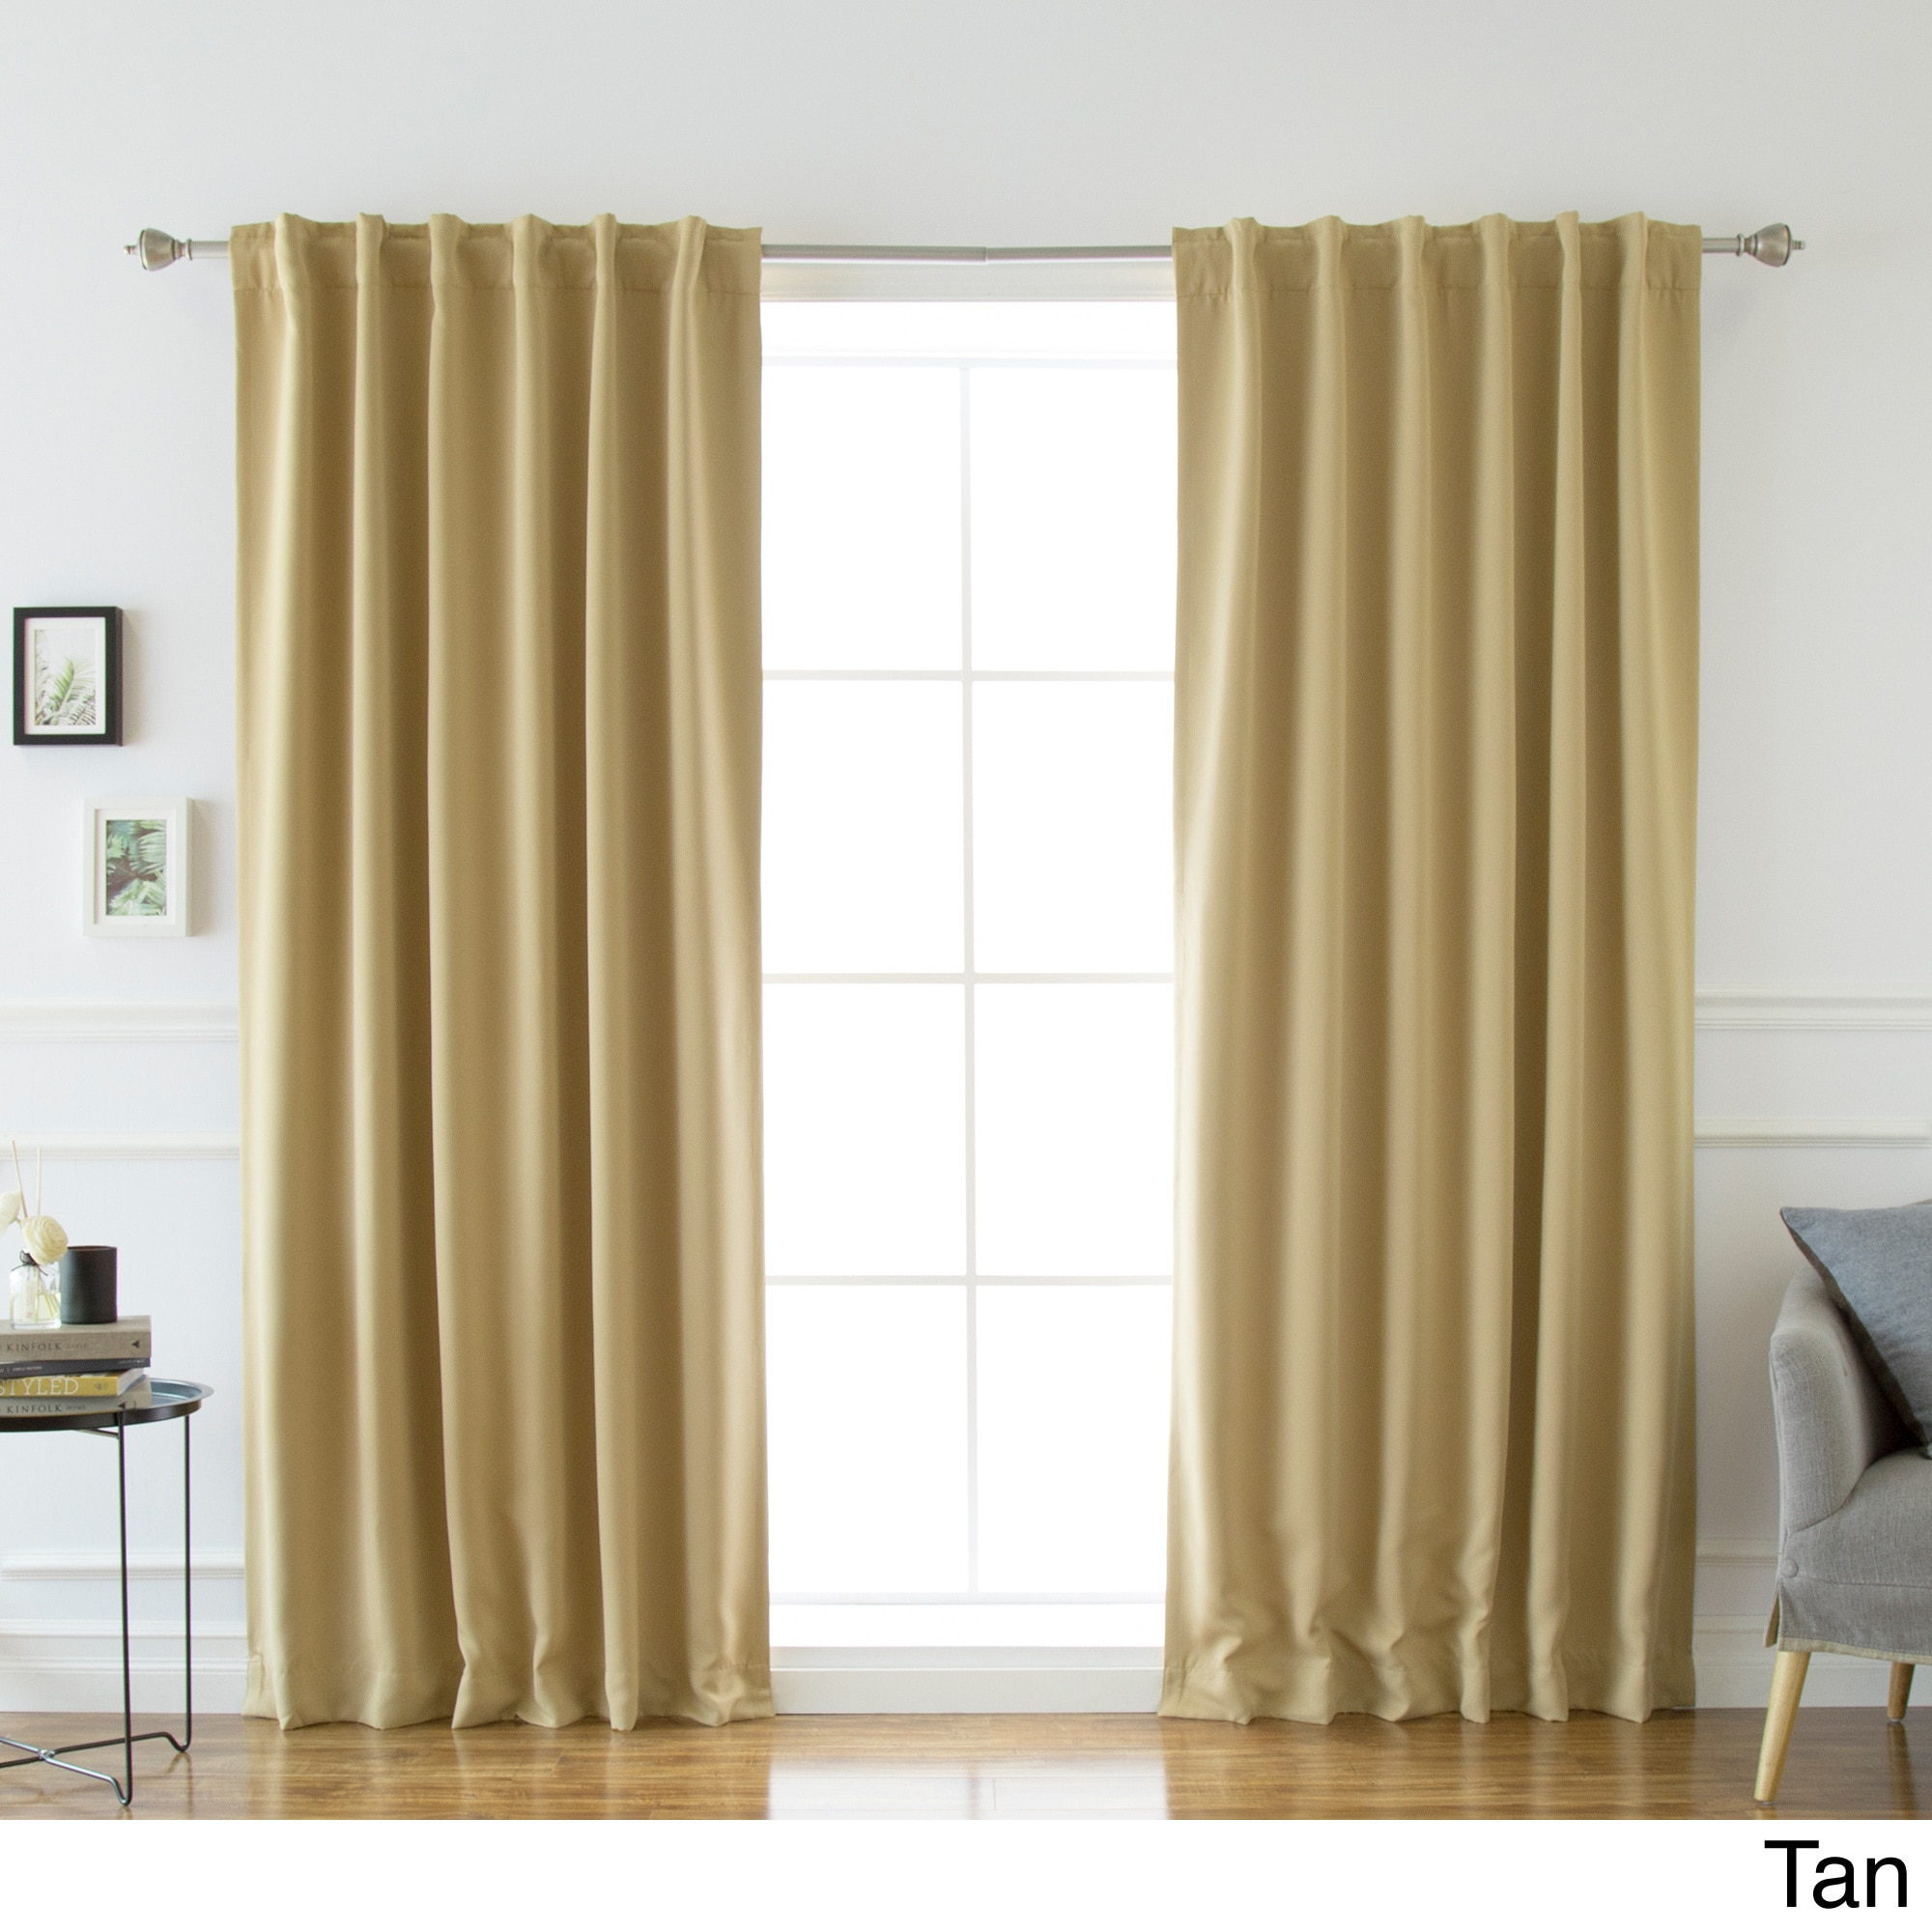 Tan Curtains & Drapes For Less | Overstock